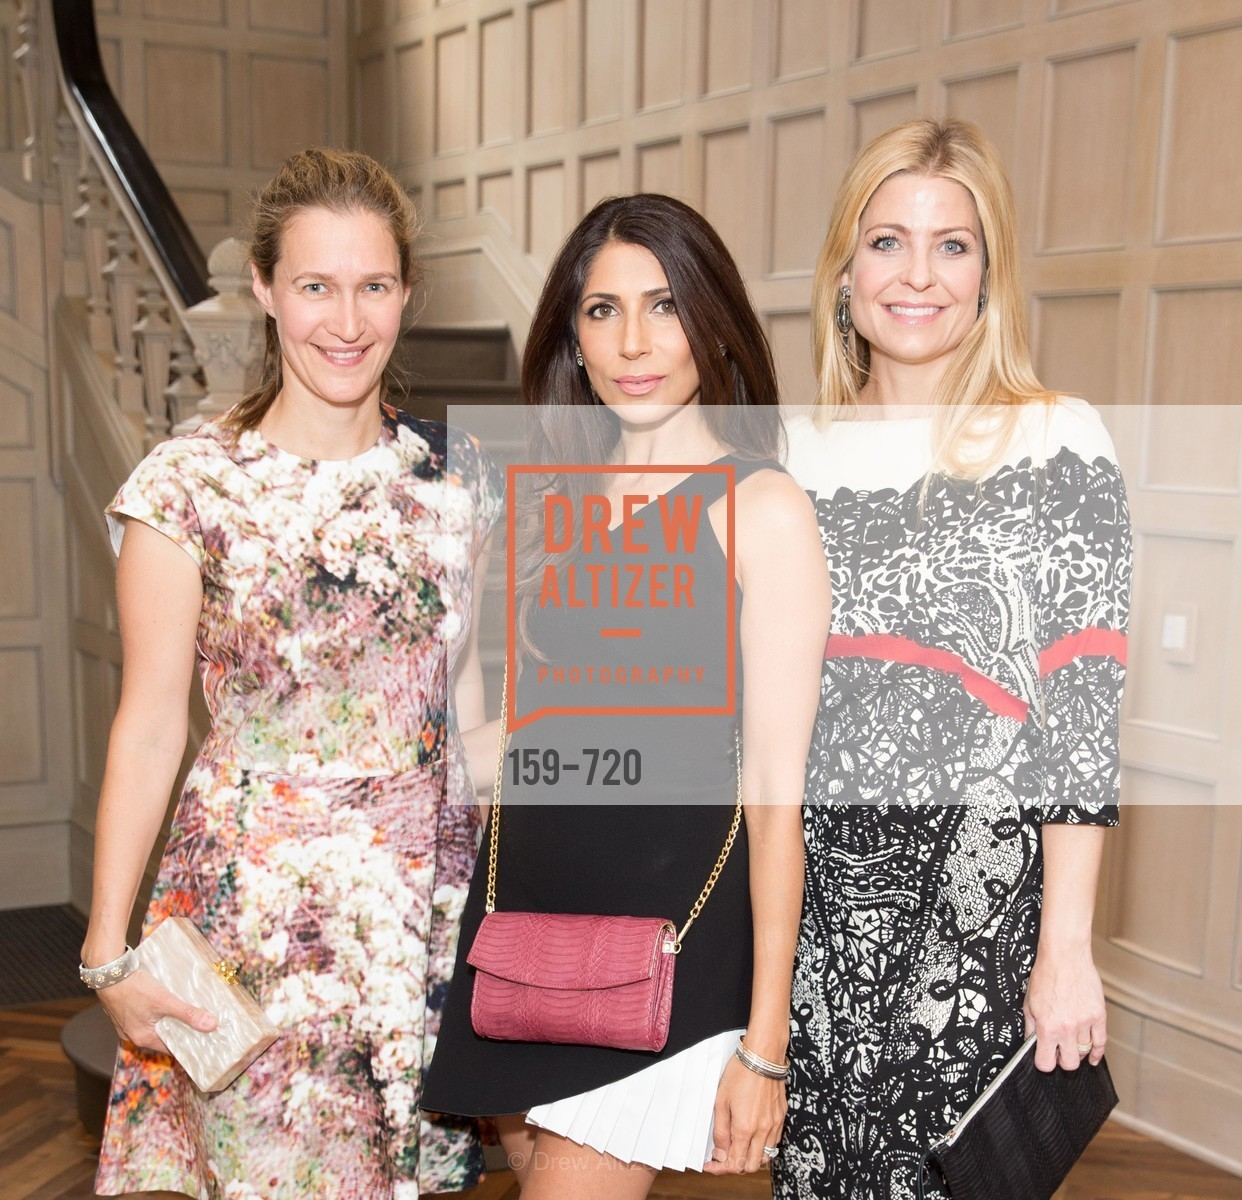 Nina Stanford, Sobia Shaikh, Jenna Hunt, C MAGAZINE Editors Cocktail Party, US, May 13th, 2015,Drew Altizer, Drew Altizer Photography, full-service agency, private events, San Francisco photographer, photographer california